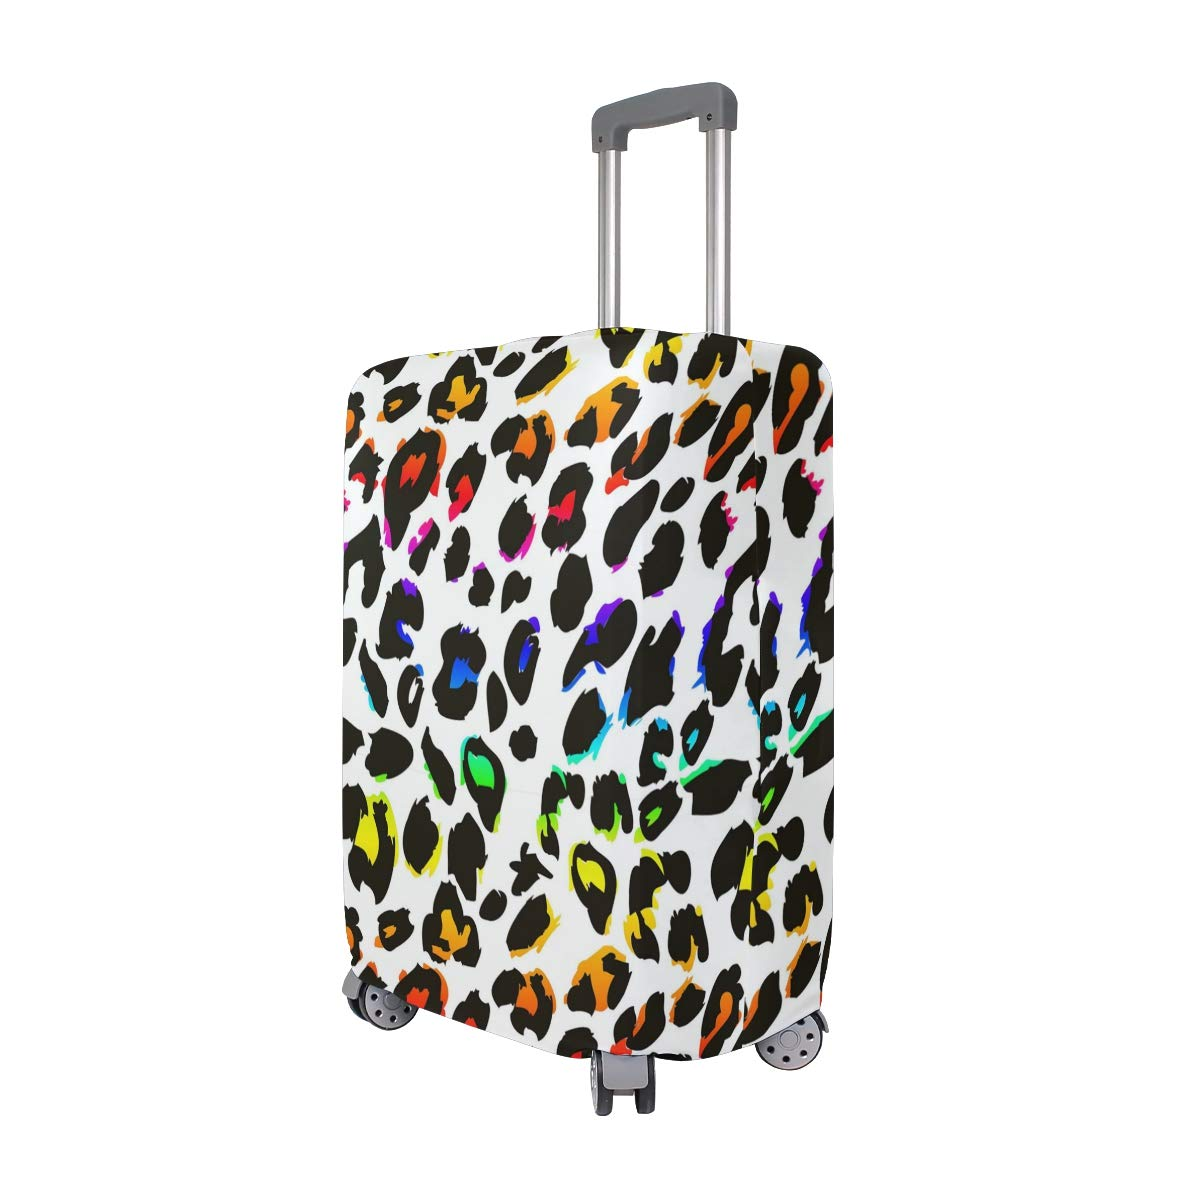 Cartoon Color Leopard Print Traveler Lightweight Rotating Luggage Protector Case Can Carry With You Can Expand Travel Bag Trolley Rolling Luggage Protector Case